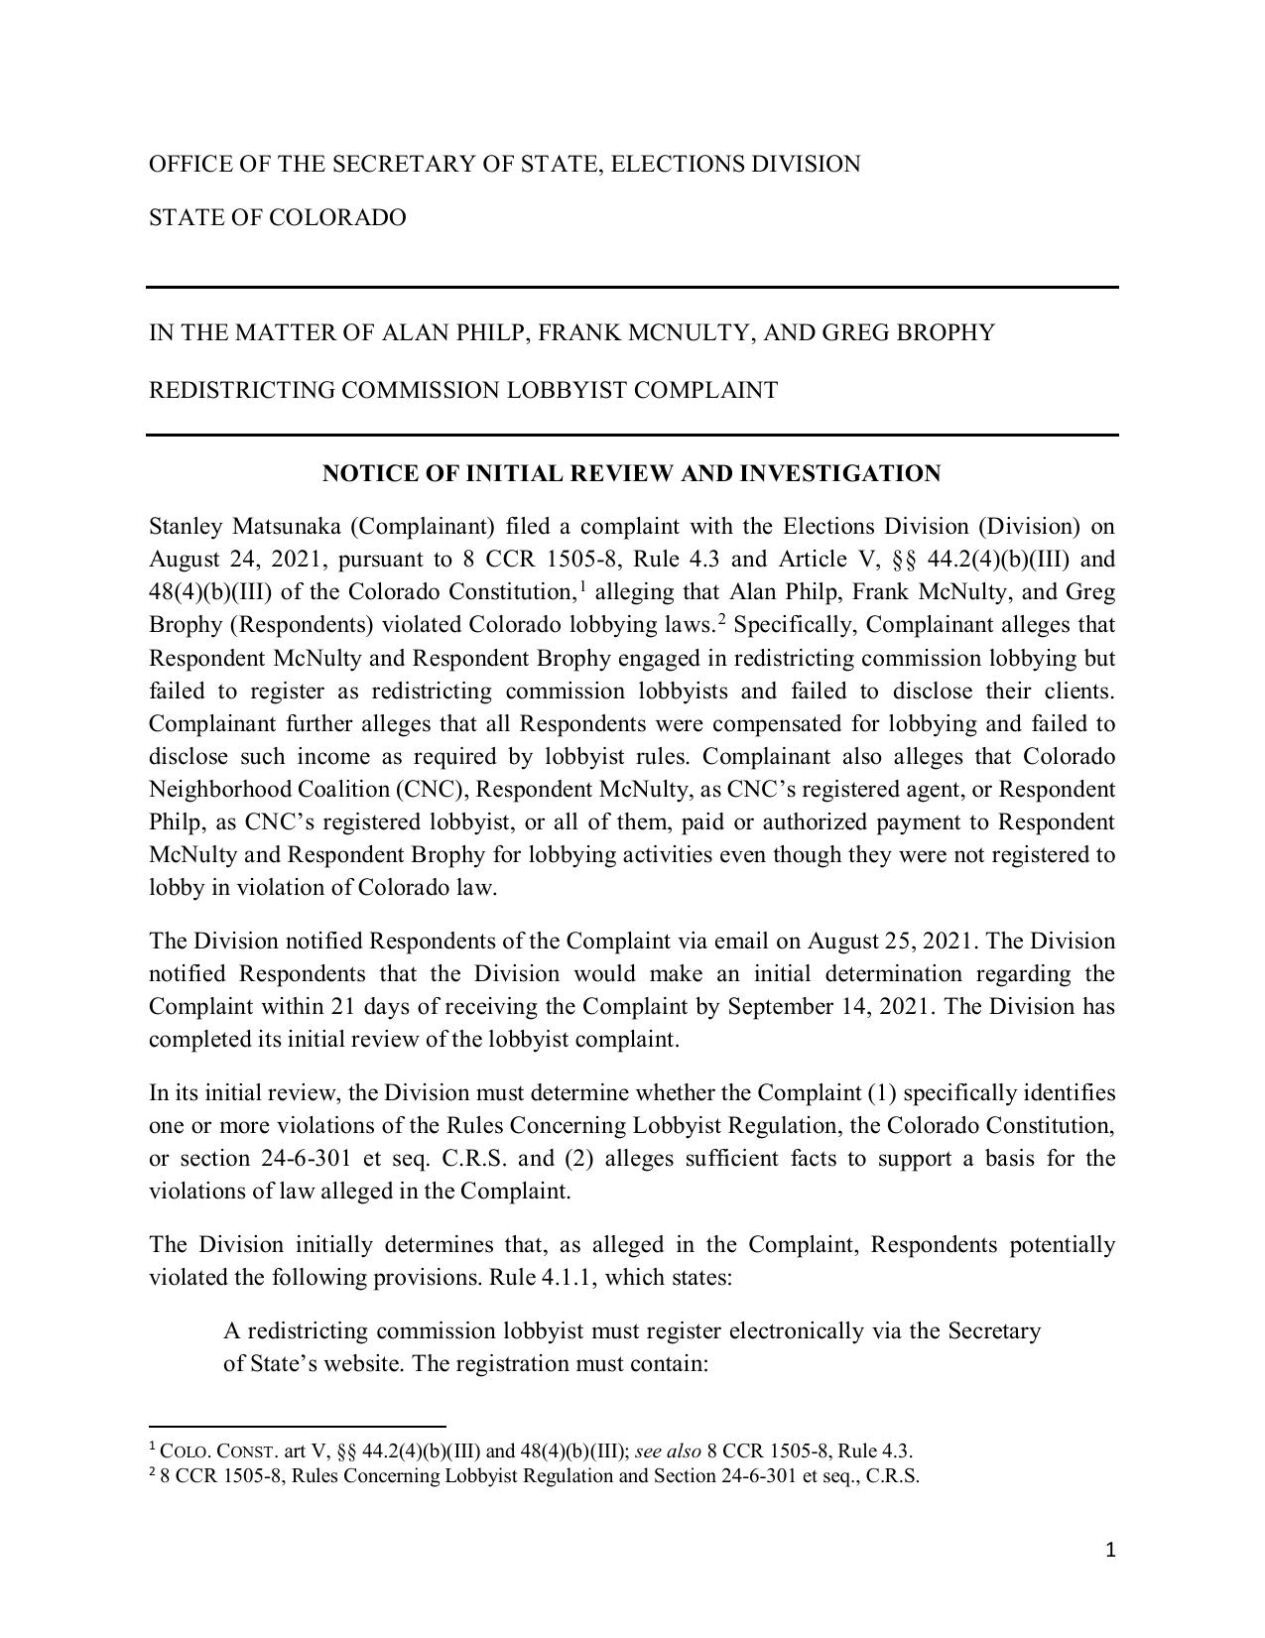 Redistricting lobbying investigation: Notice of Initial Review and Investigation